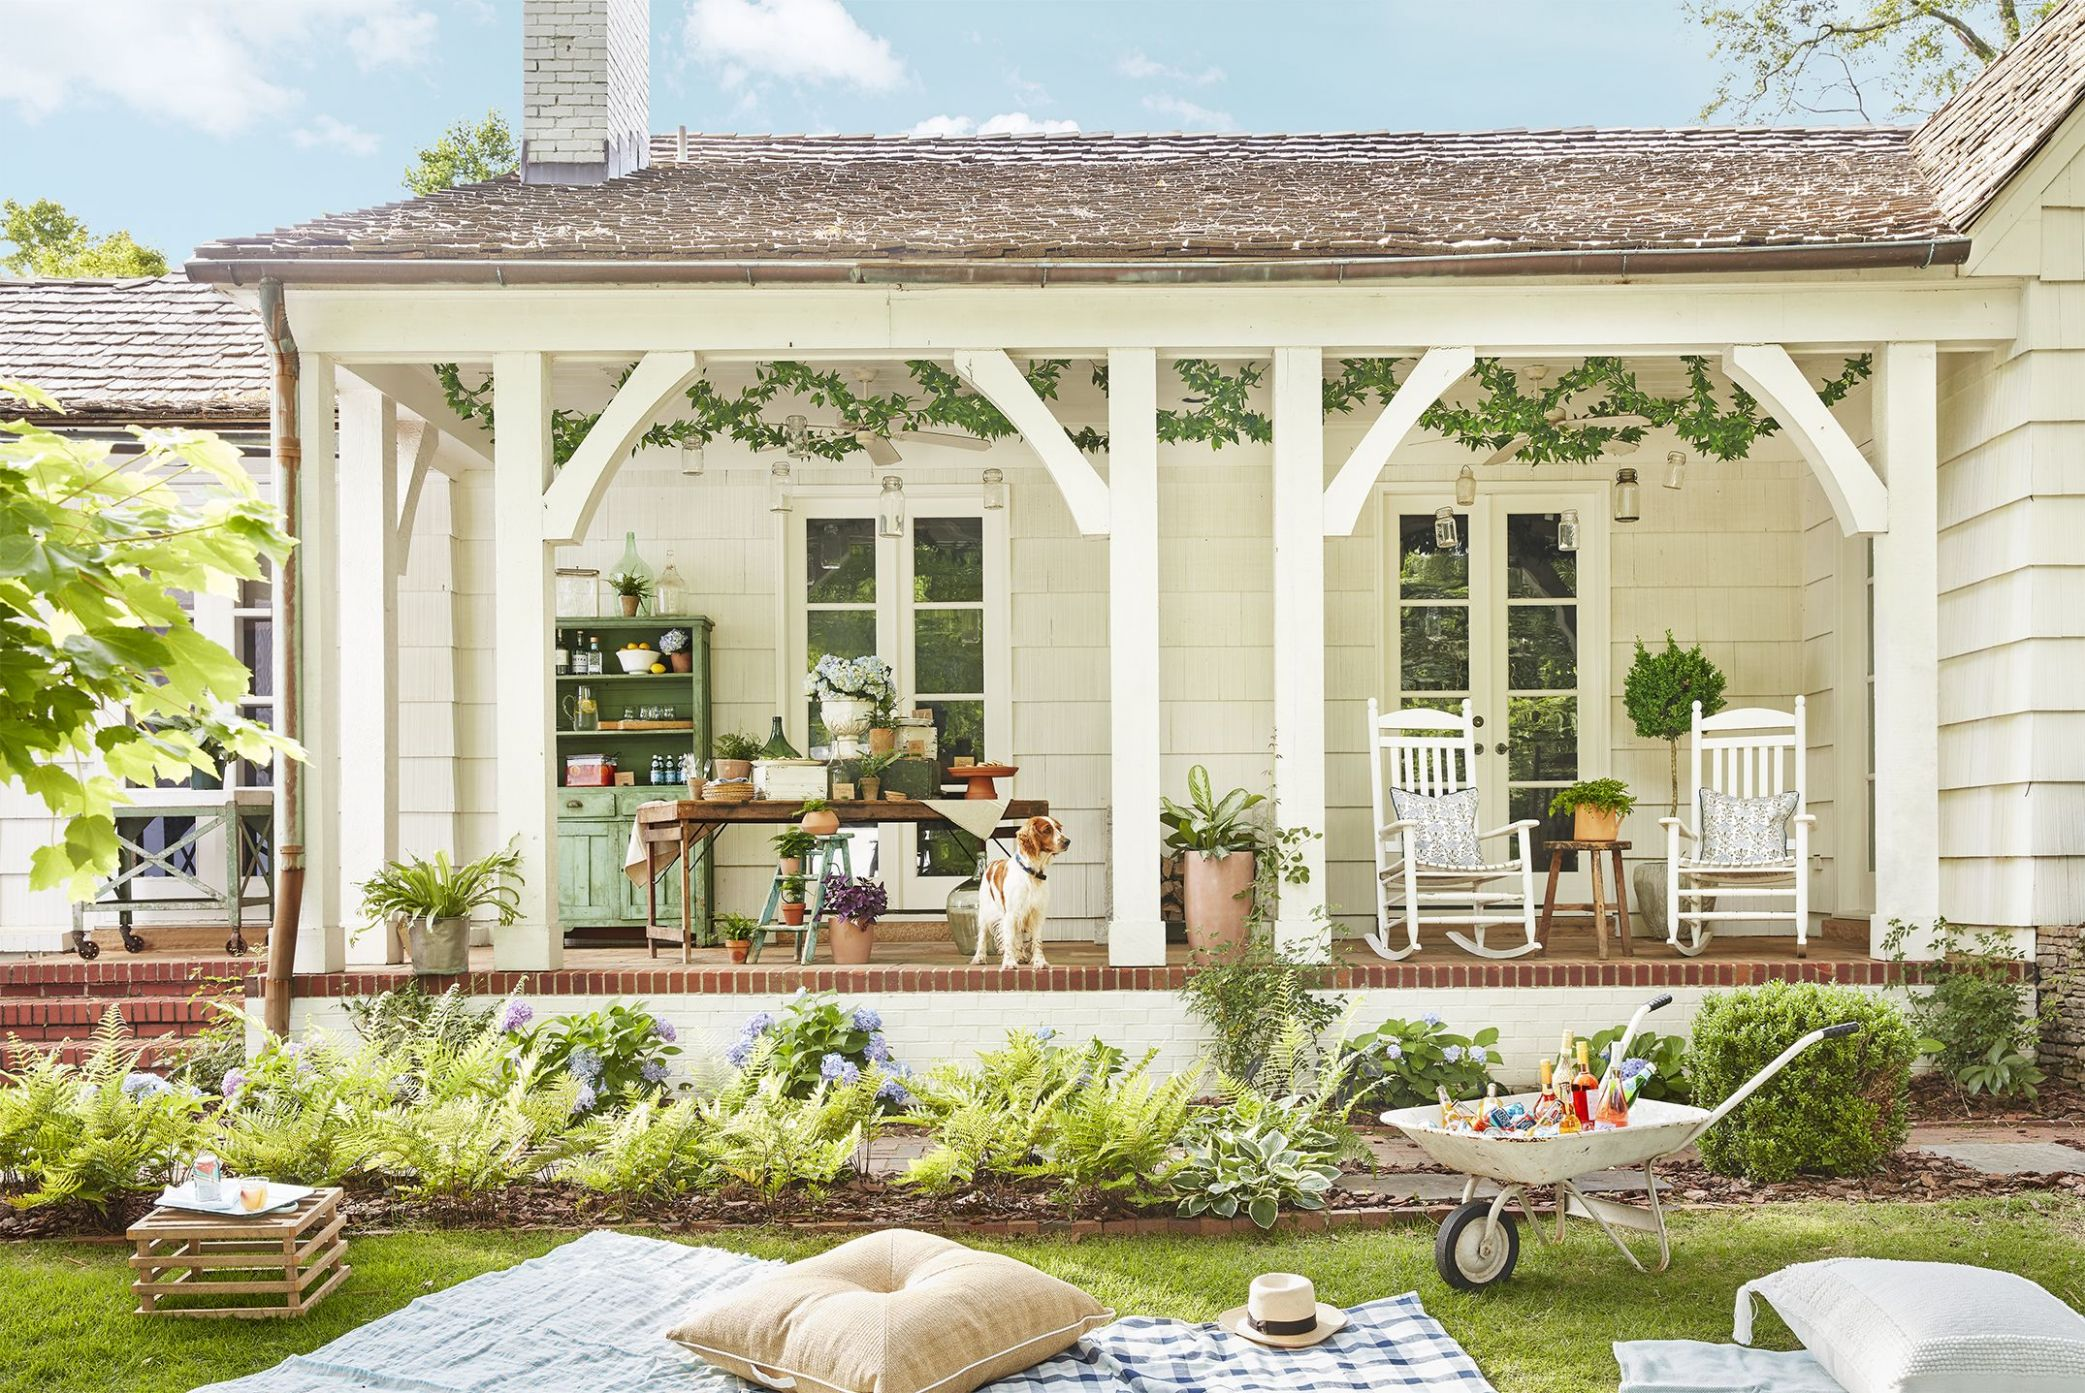 9 Best Front Porch Ideas - Ideas for Front Porch and Patio Decorating - front porch country decor